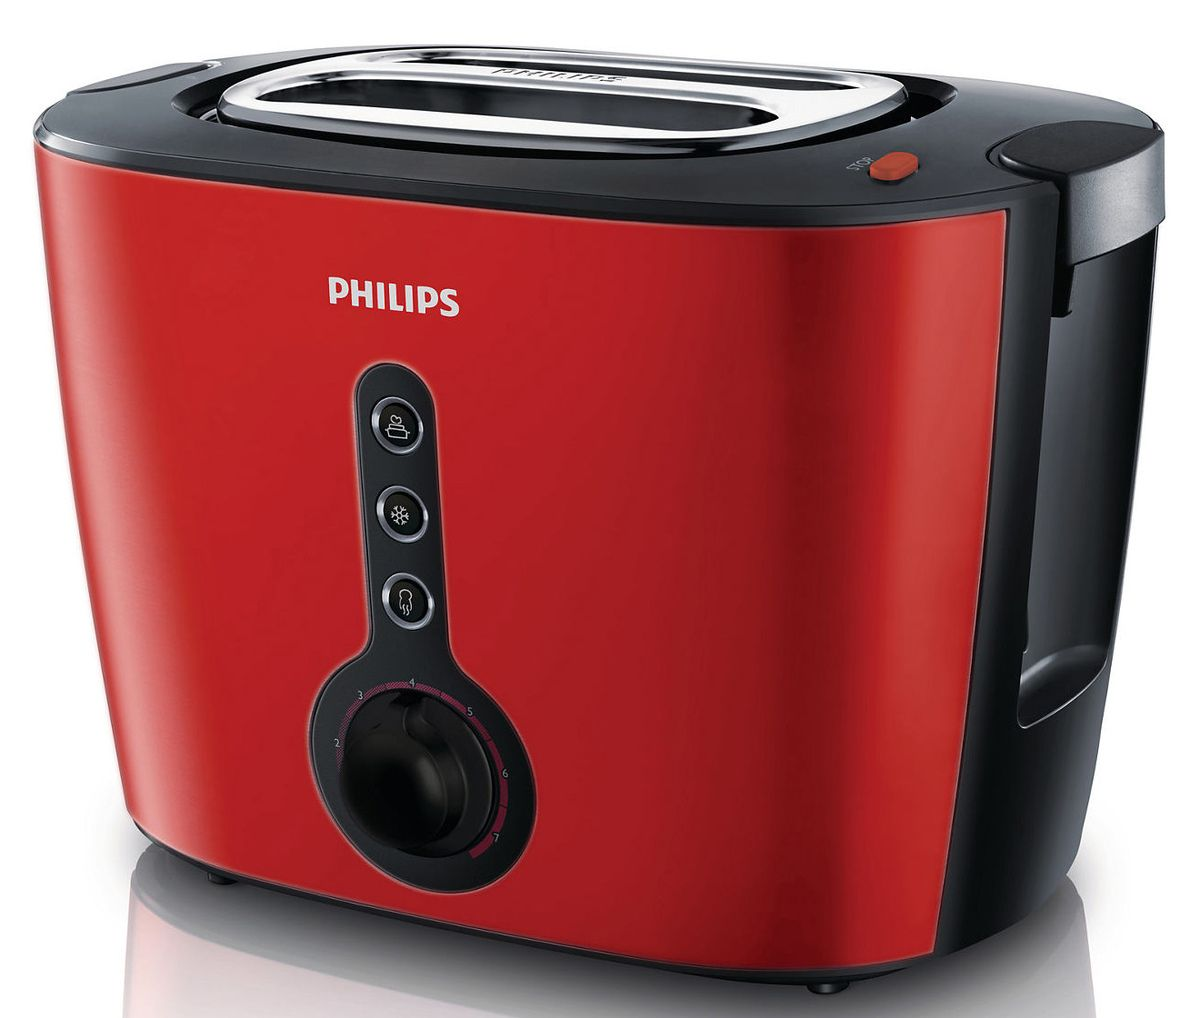 Тостер Philips HD2636/40 от Ravta